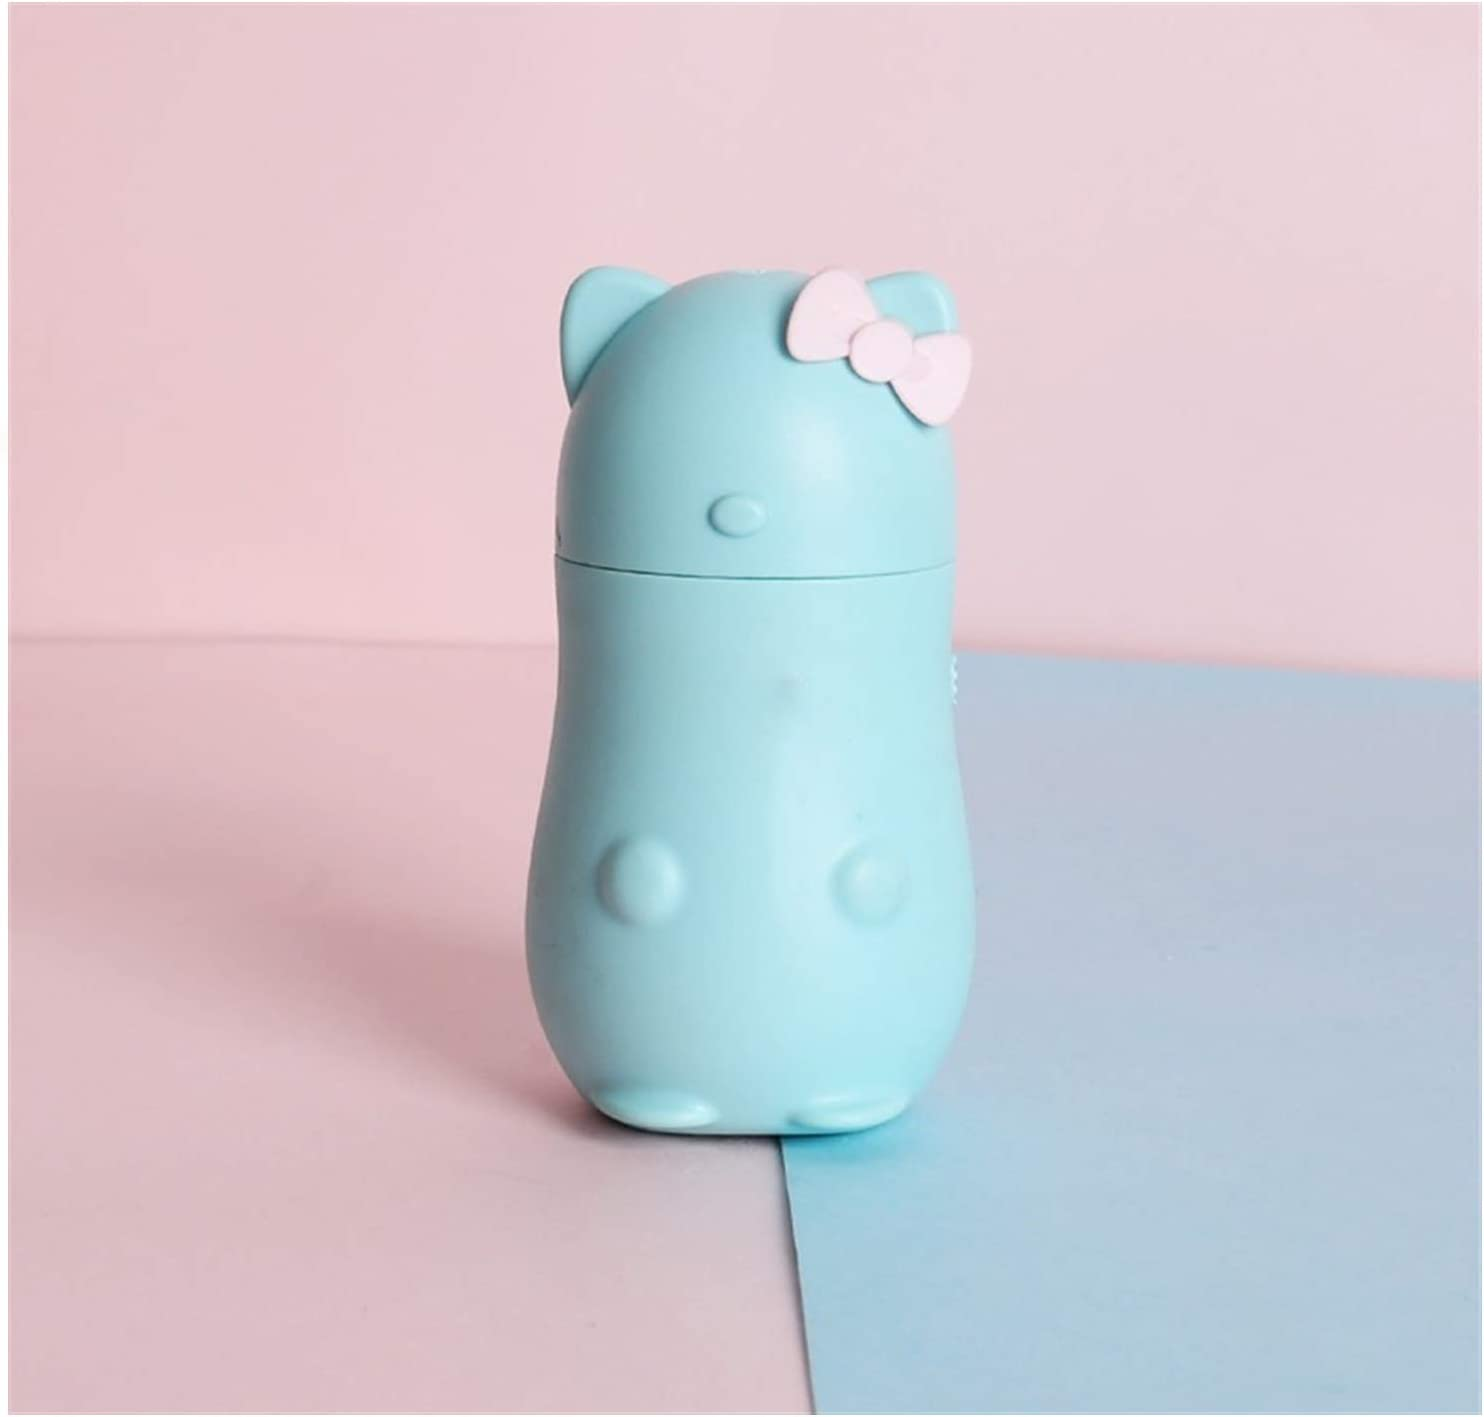 ZHANGQIAO-AE Mini Animal USB Fan Desktop Mute Galvanic Fan Outside Personal Fan Girl Children Baby Mini USB Desktop Fan Small Personal Silent Fan Por Color : 08